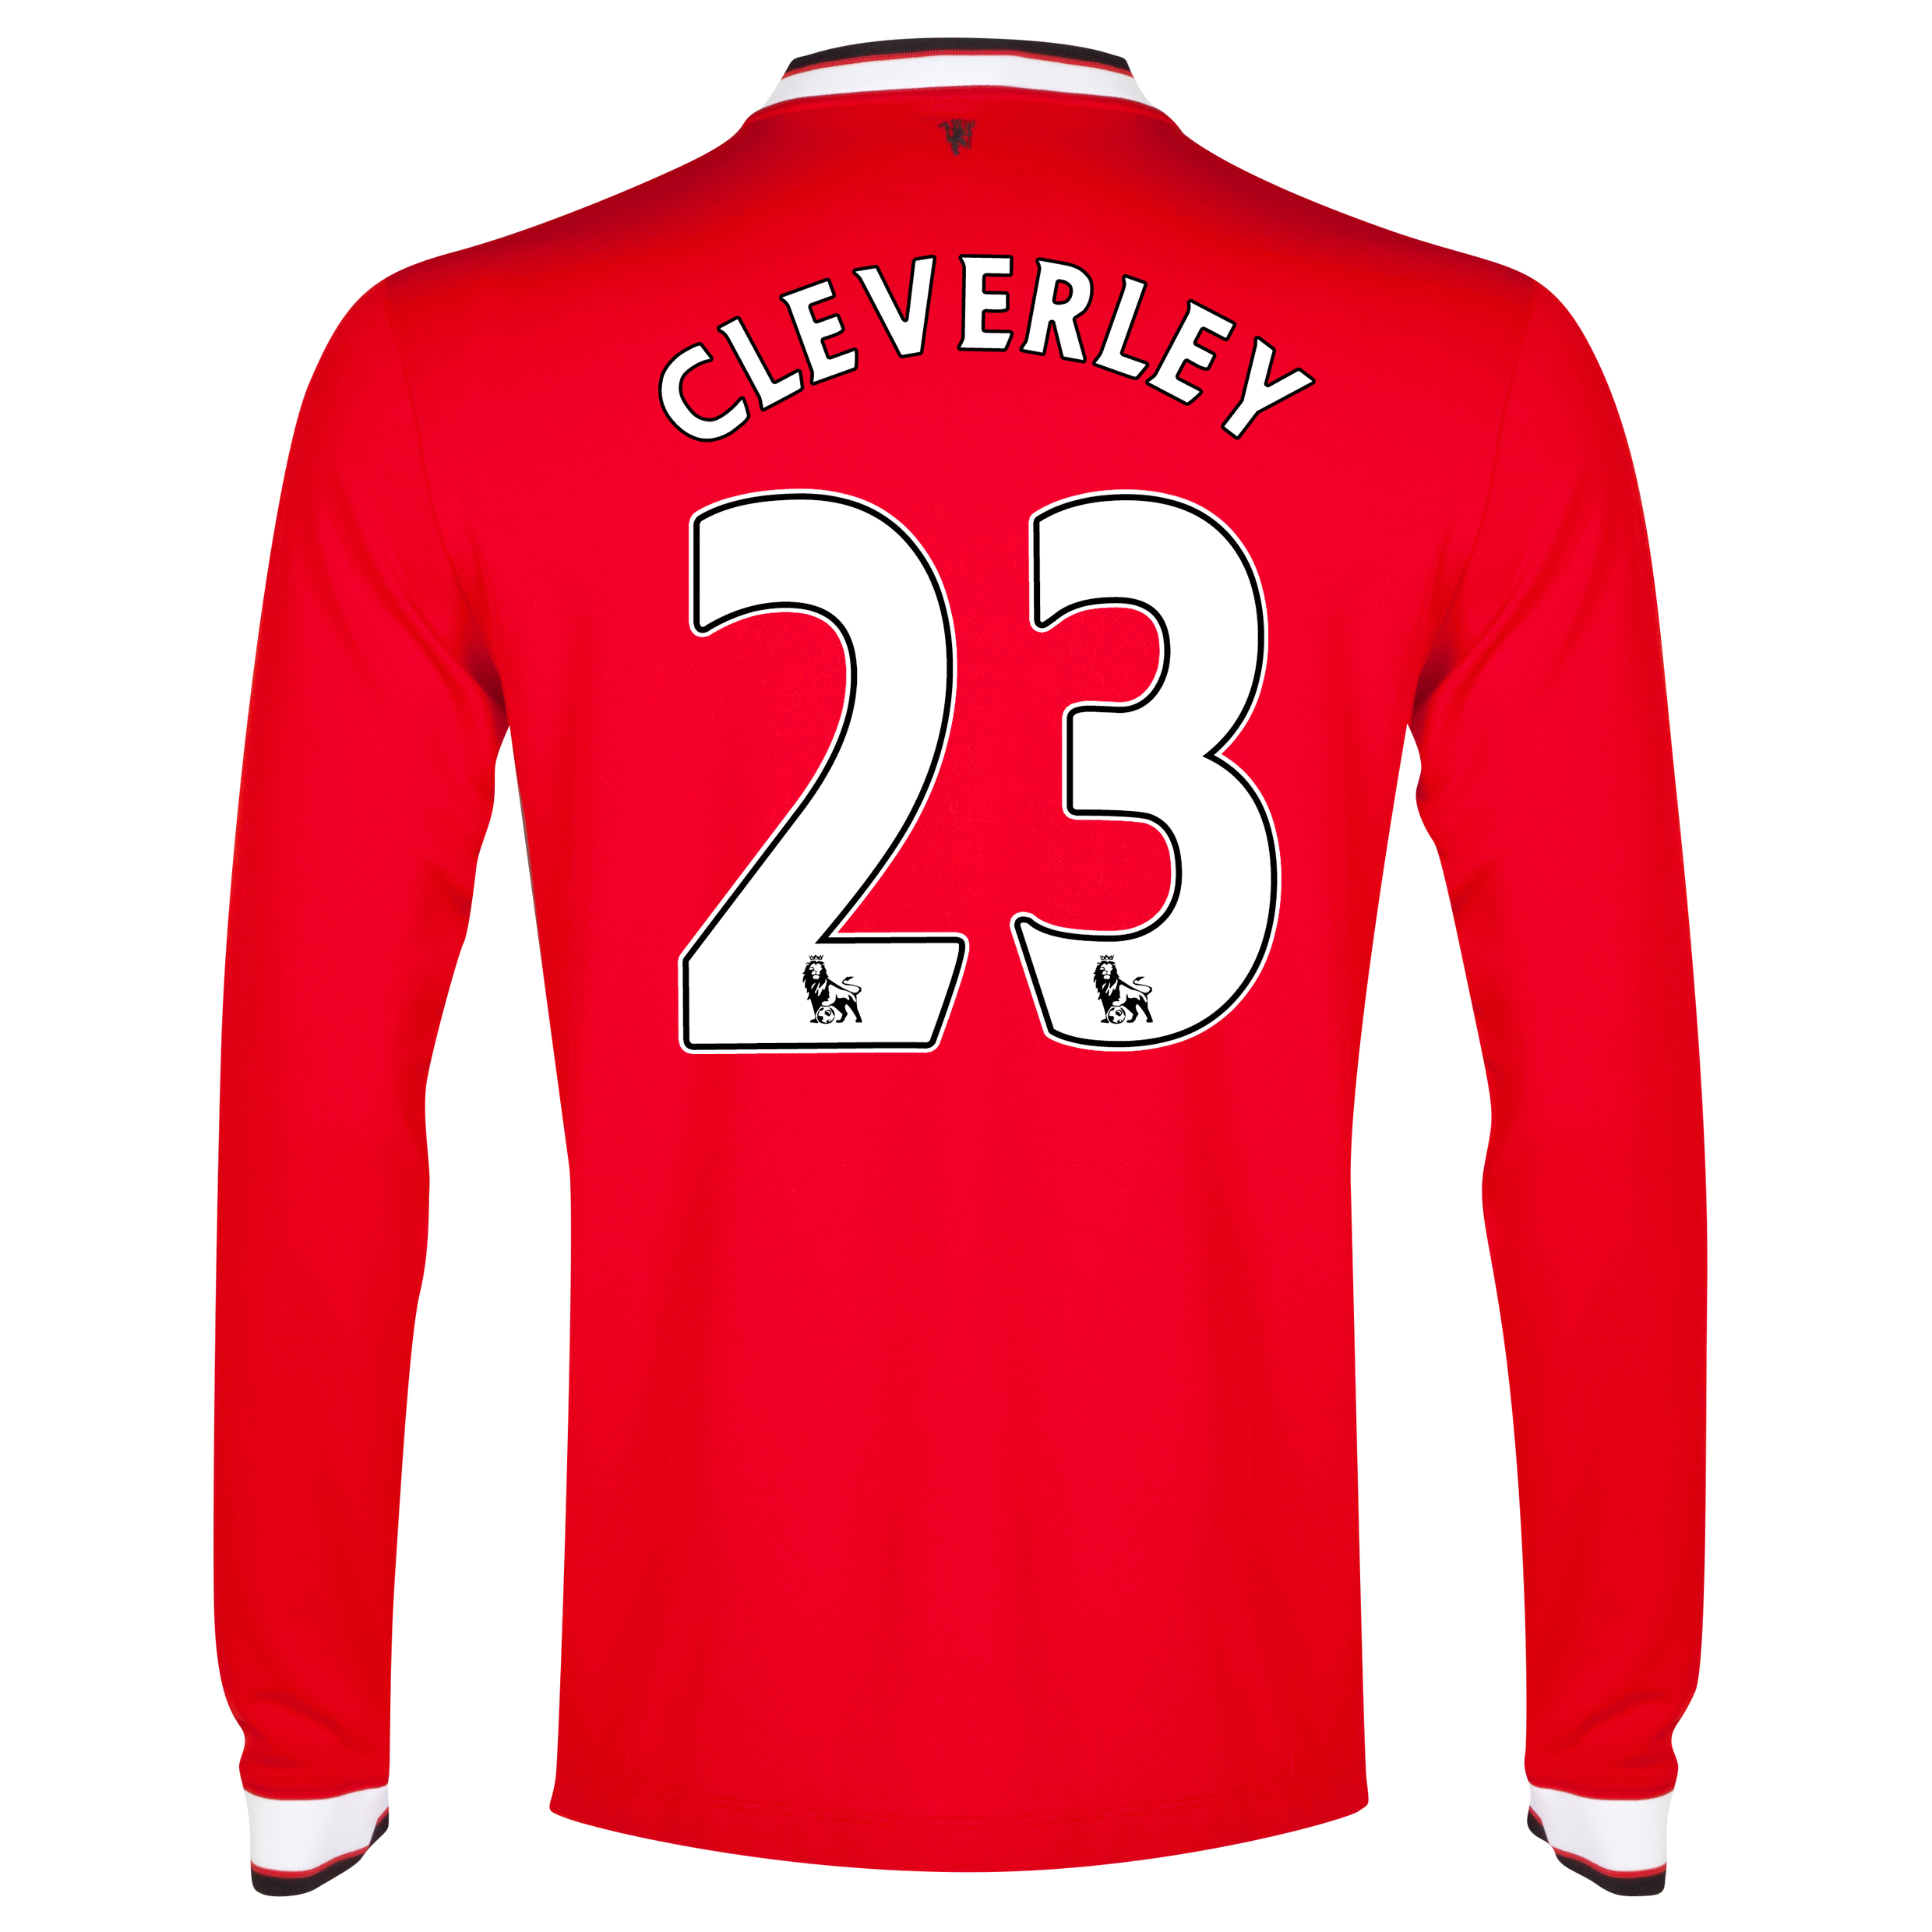 Manchester United Home Shirt 2014/15 - Long Sleeve Red with Cleverley 23 printing